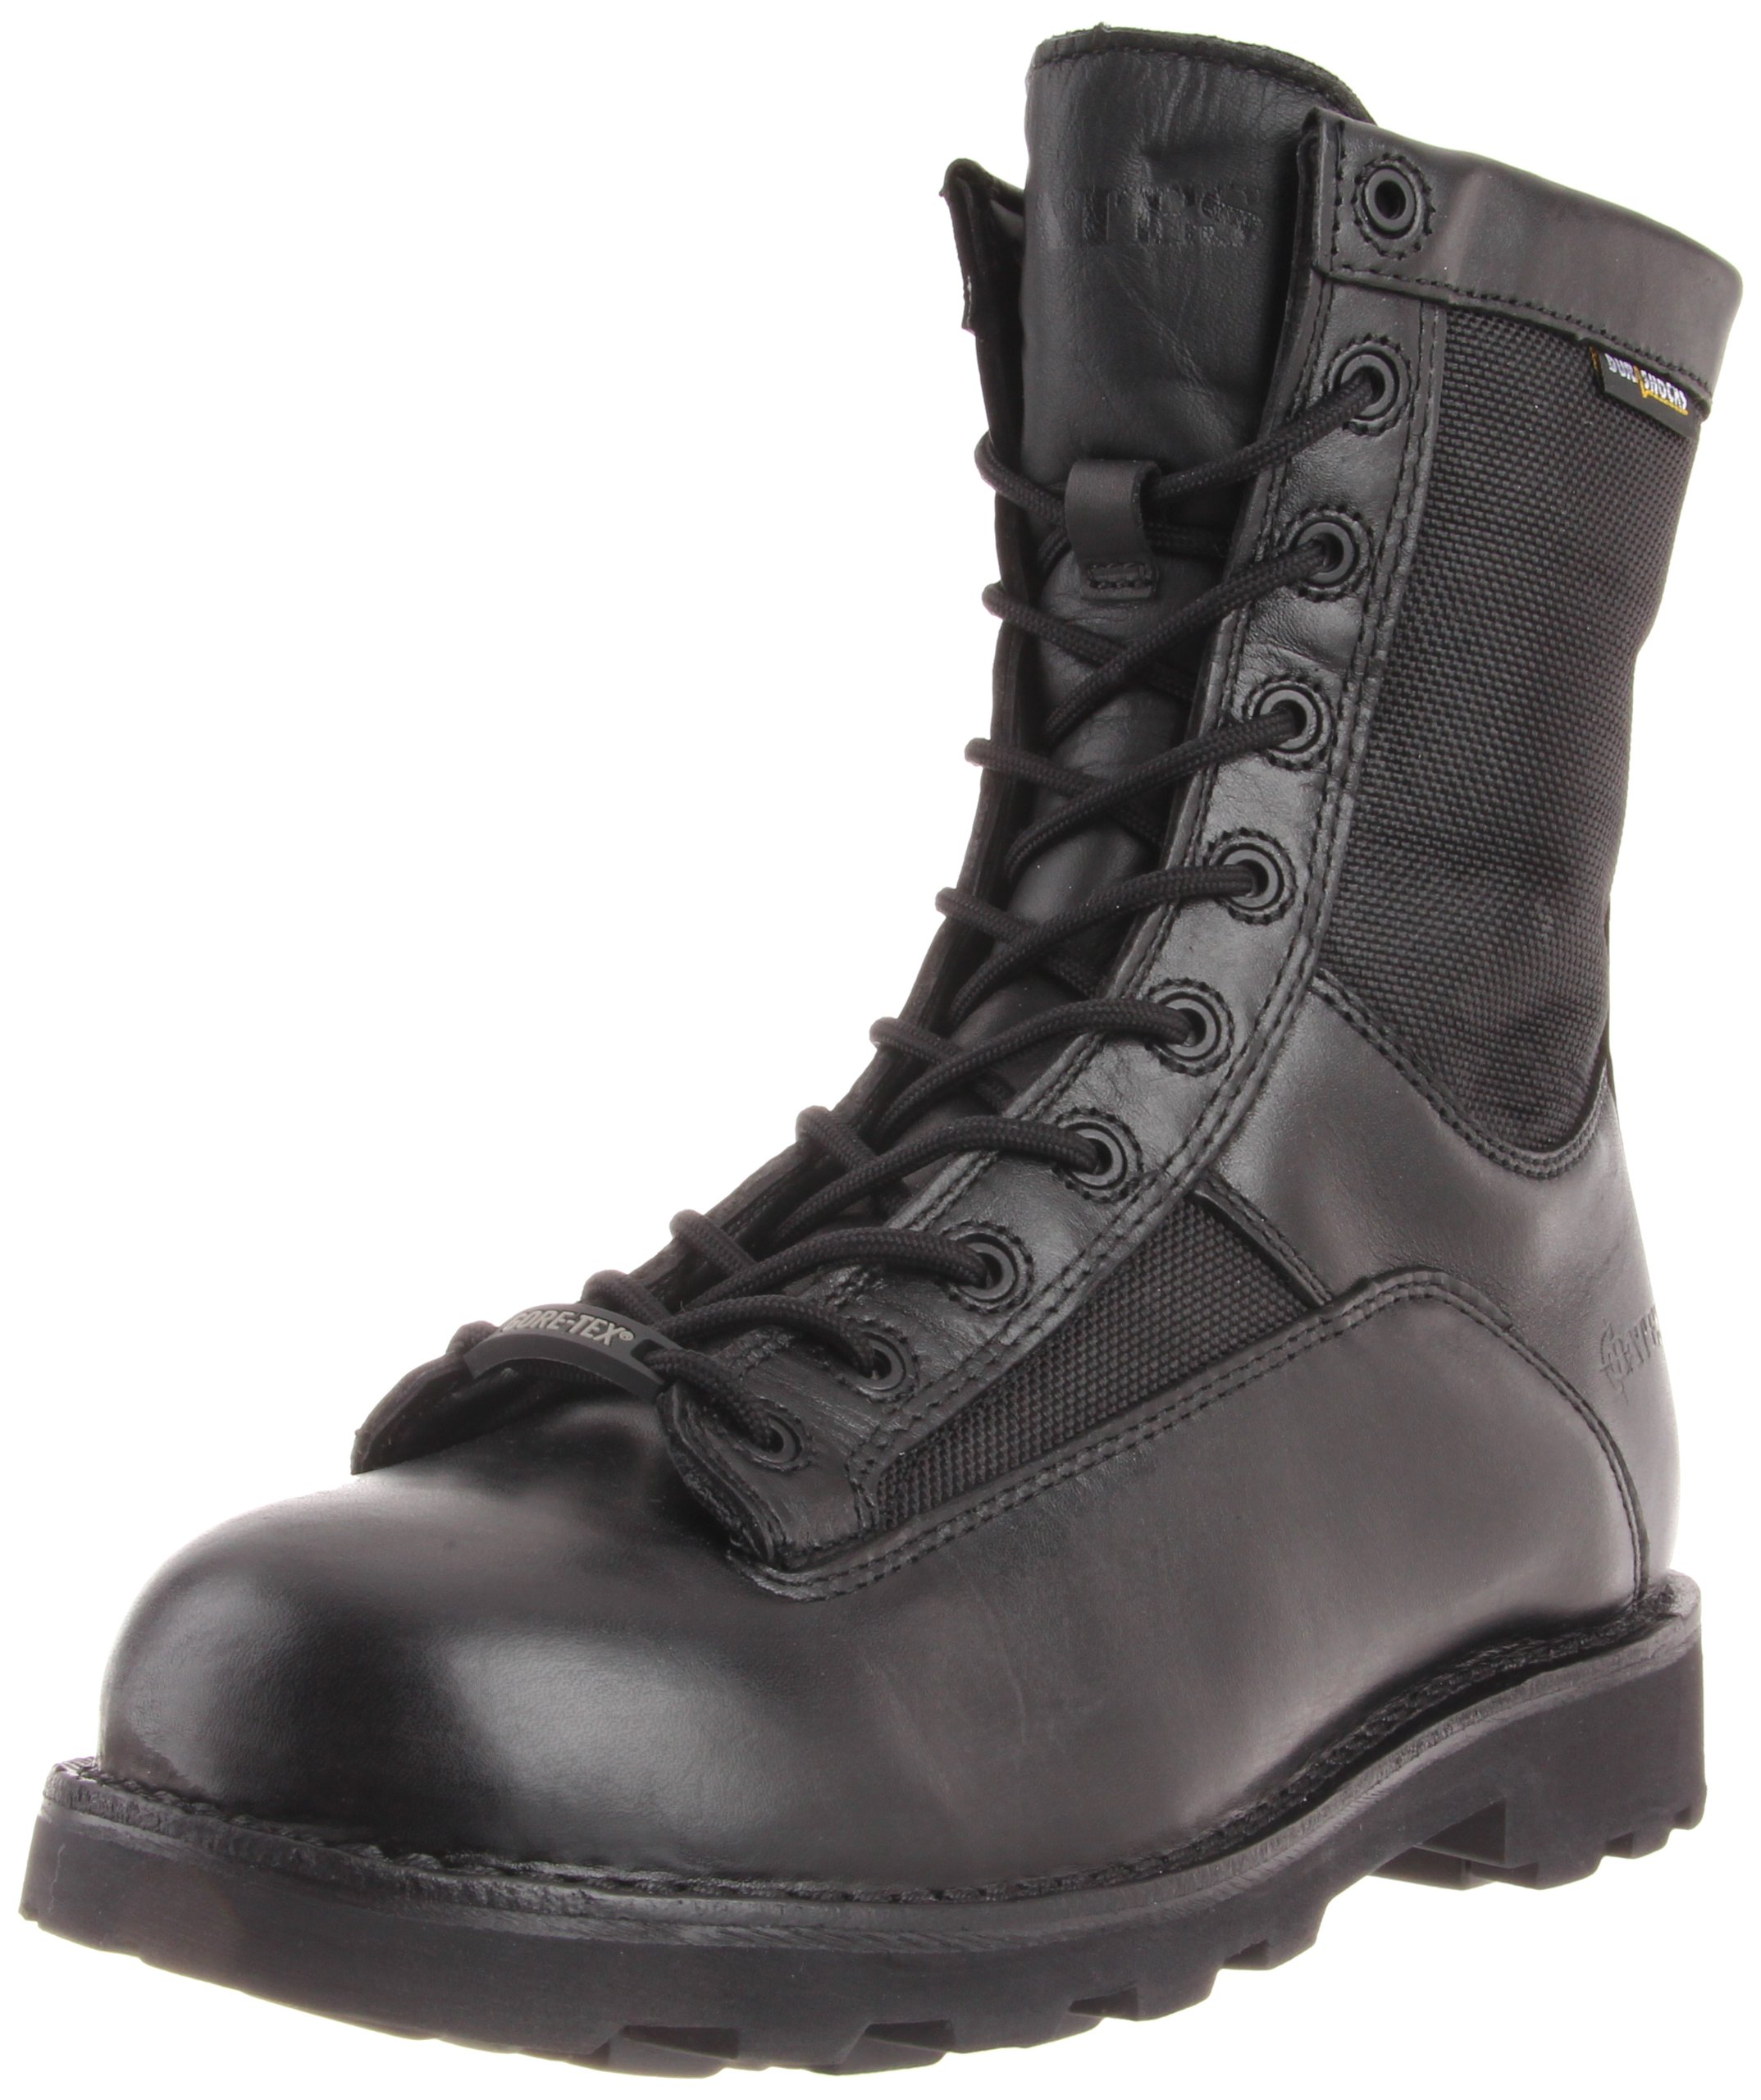 Bates Men's 8 Inches Durashocks GTX Lace-to-Toe Work Boot,Black,8 EW US